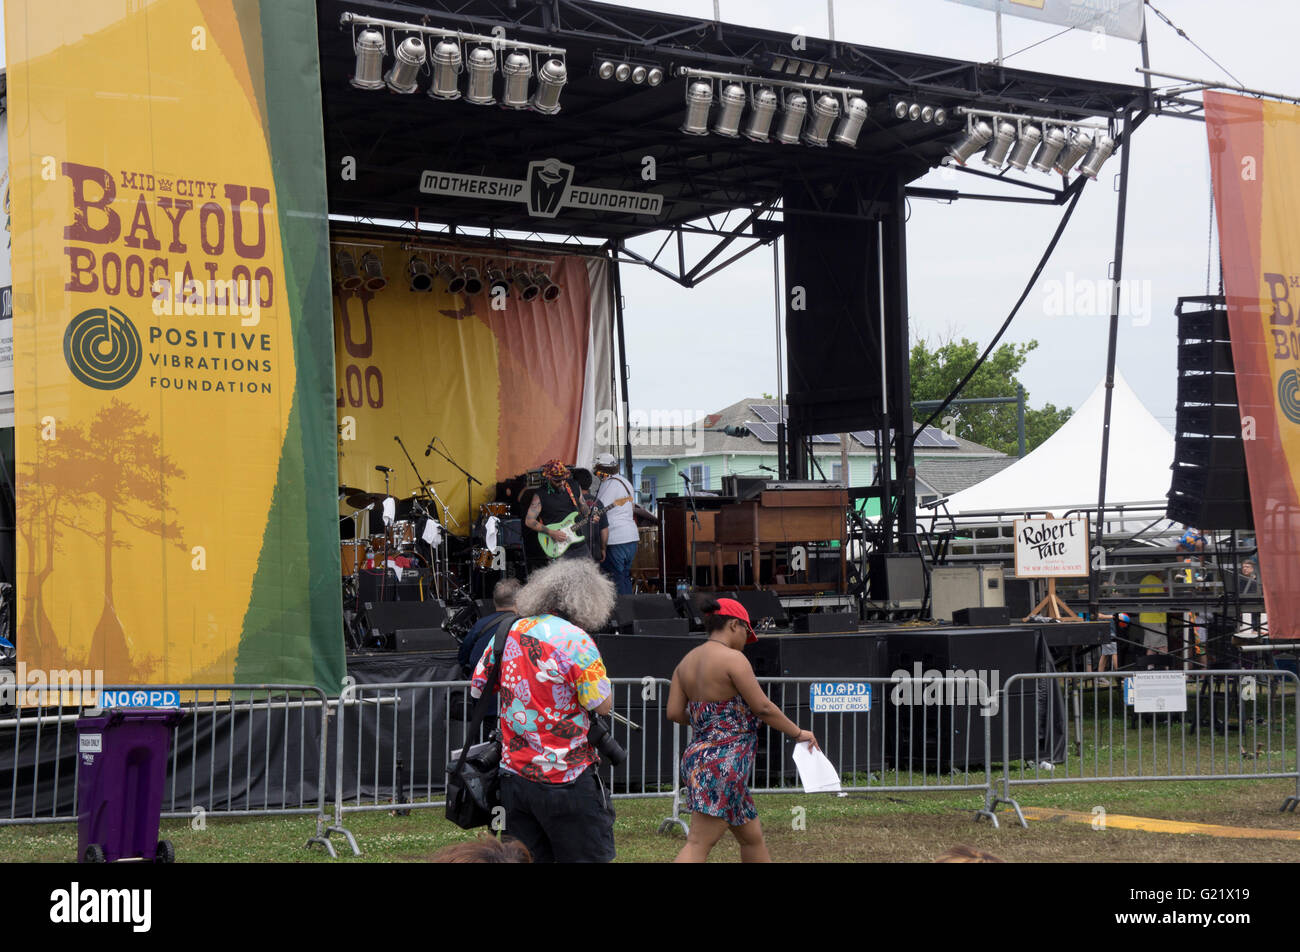 Bayou Boogaloo festival stage, New Orleans, LA. - Stock Image